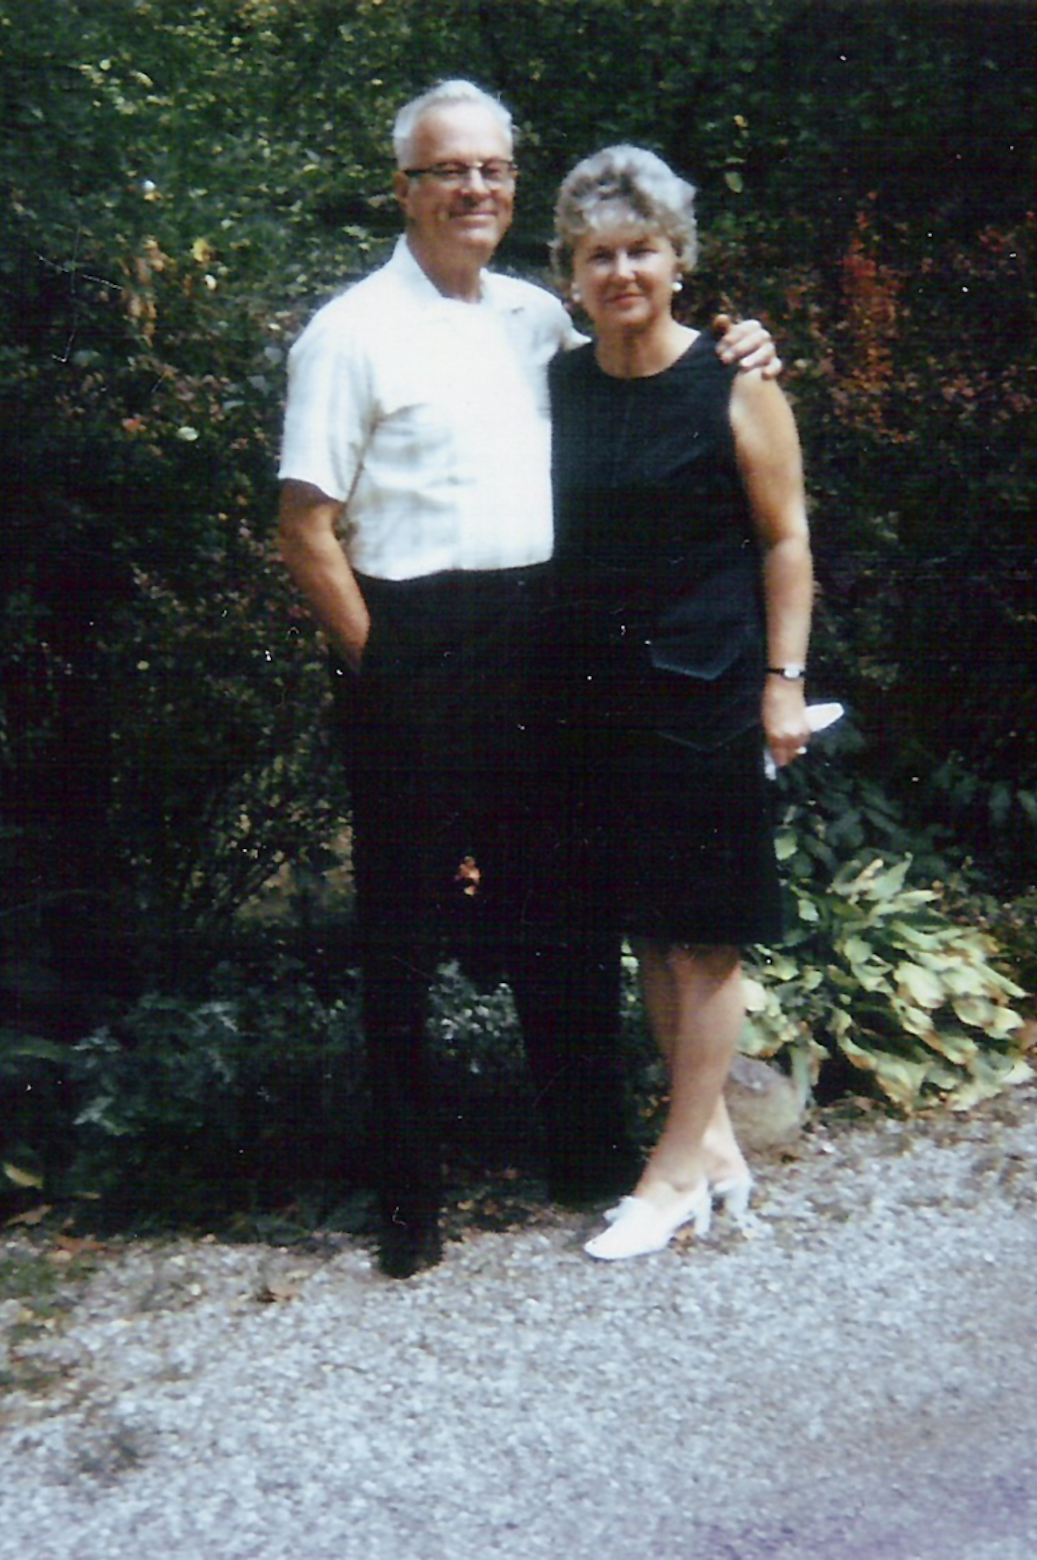 Johnson posing with his wife Thelma